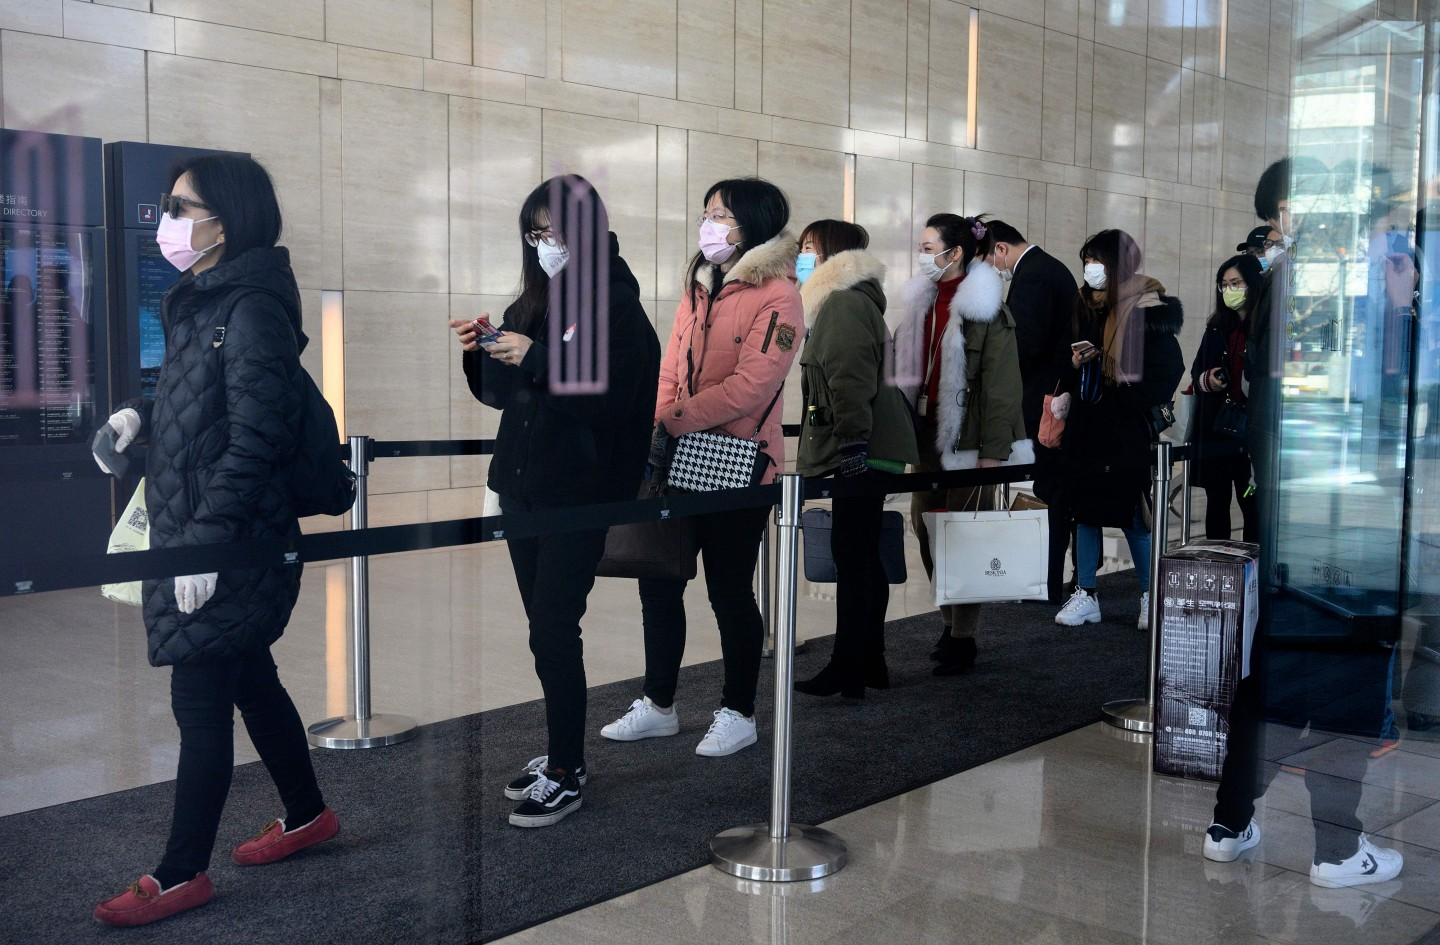 Employees wearing protective face masks queue as they return to work at an office building in Shanghai on 10 February 2020. (Noel Celis/AFP)